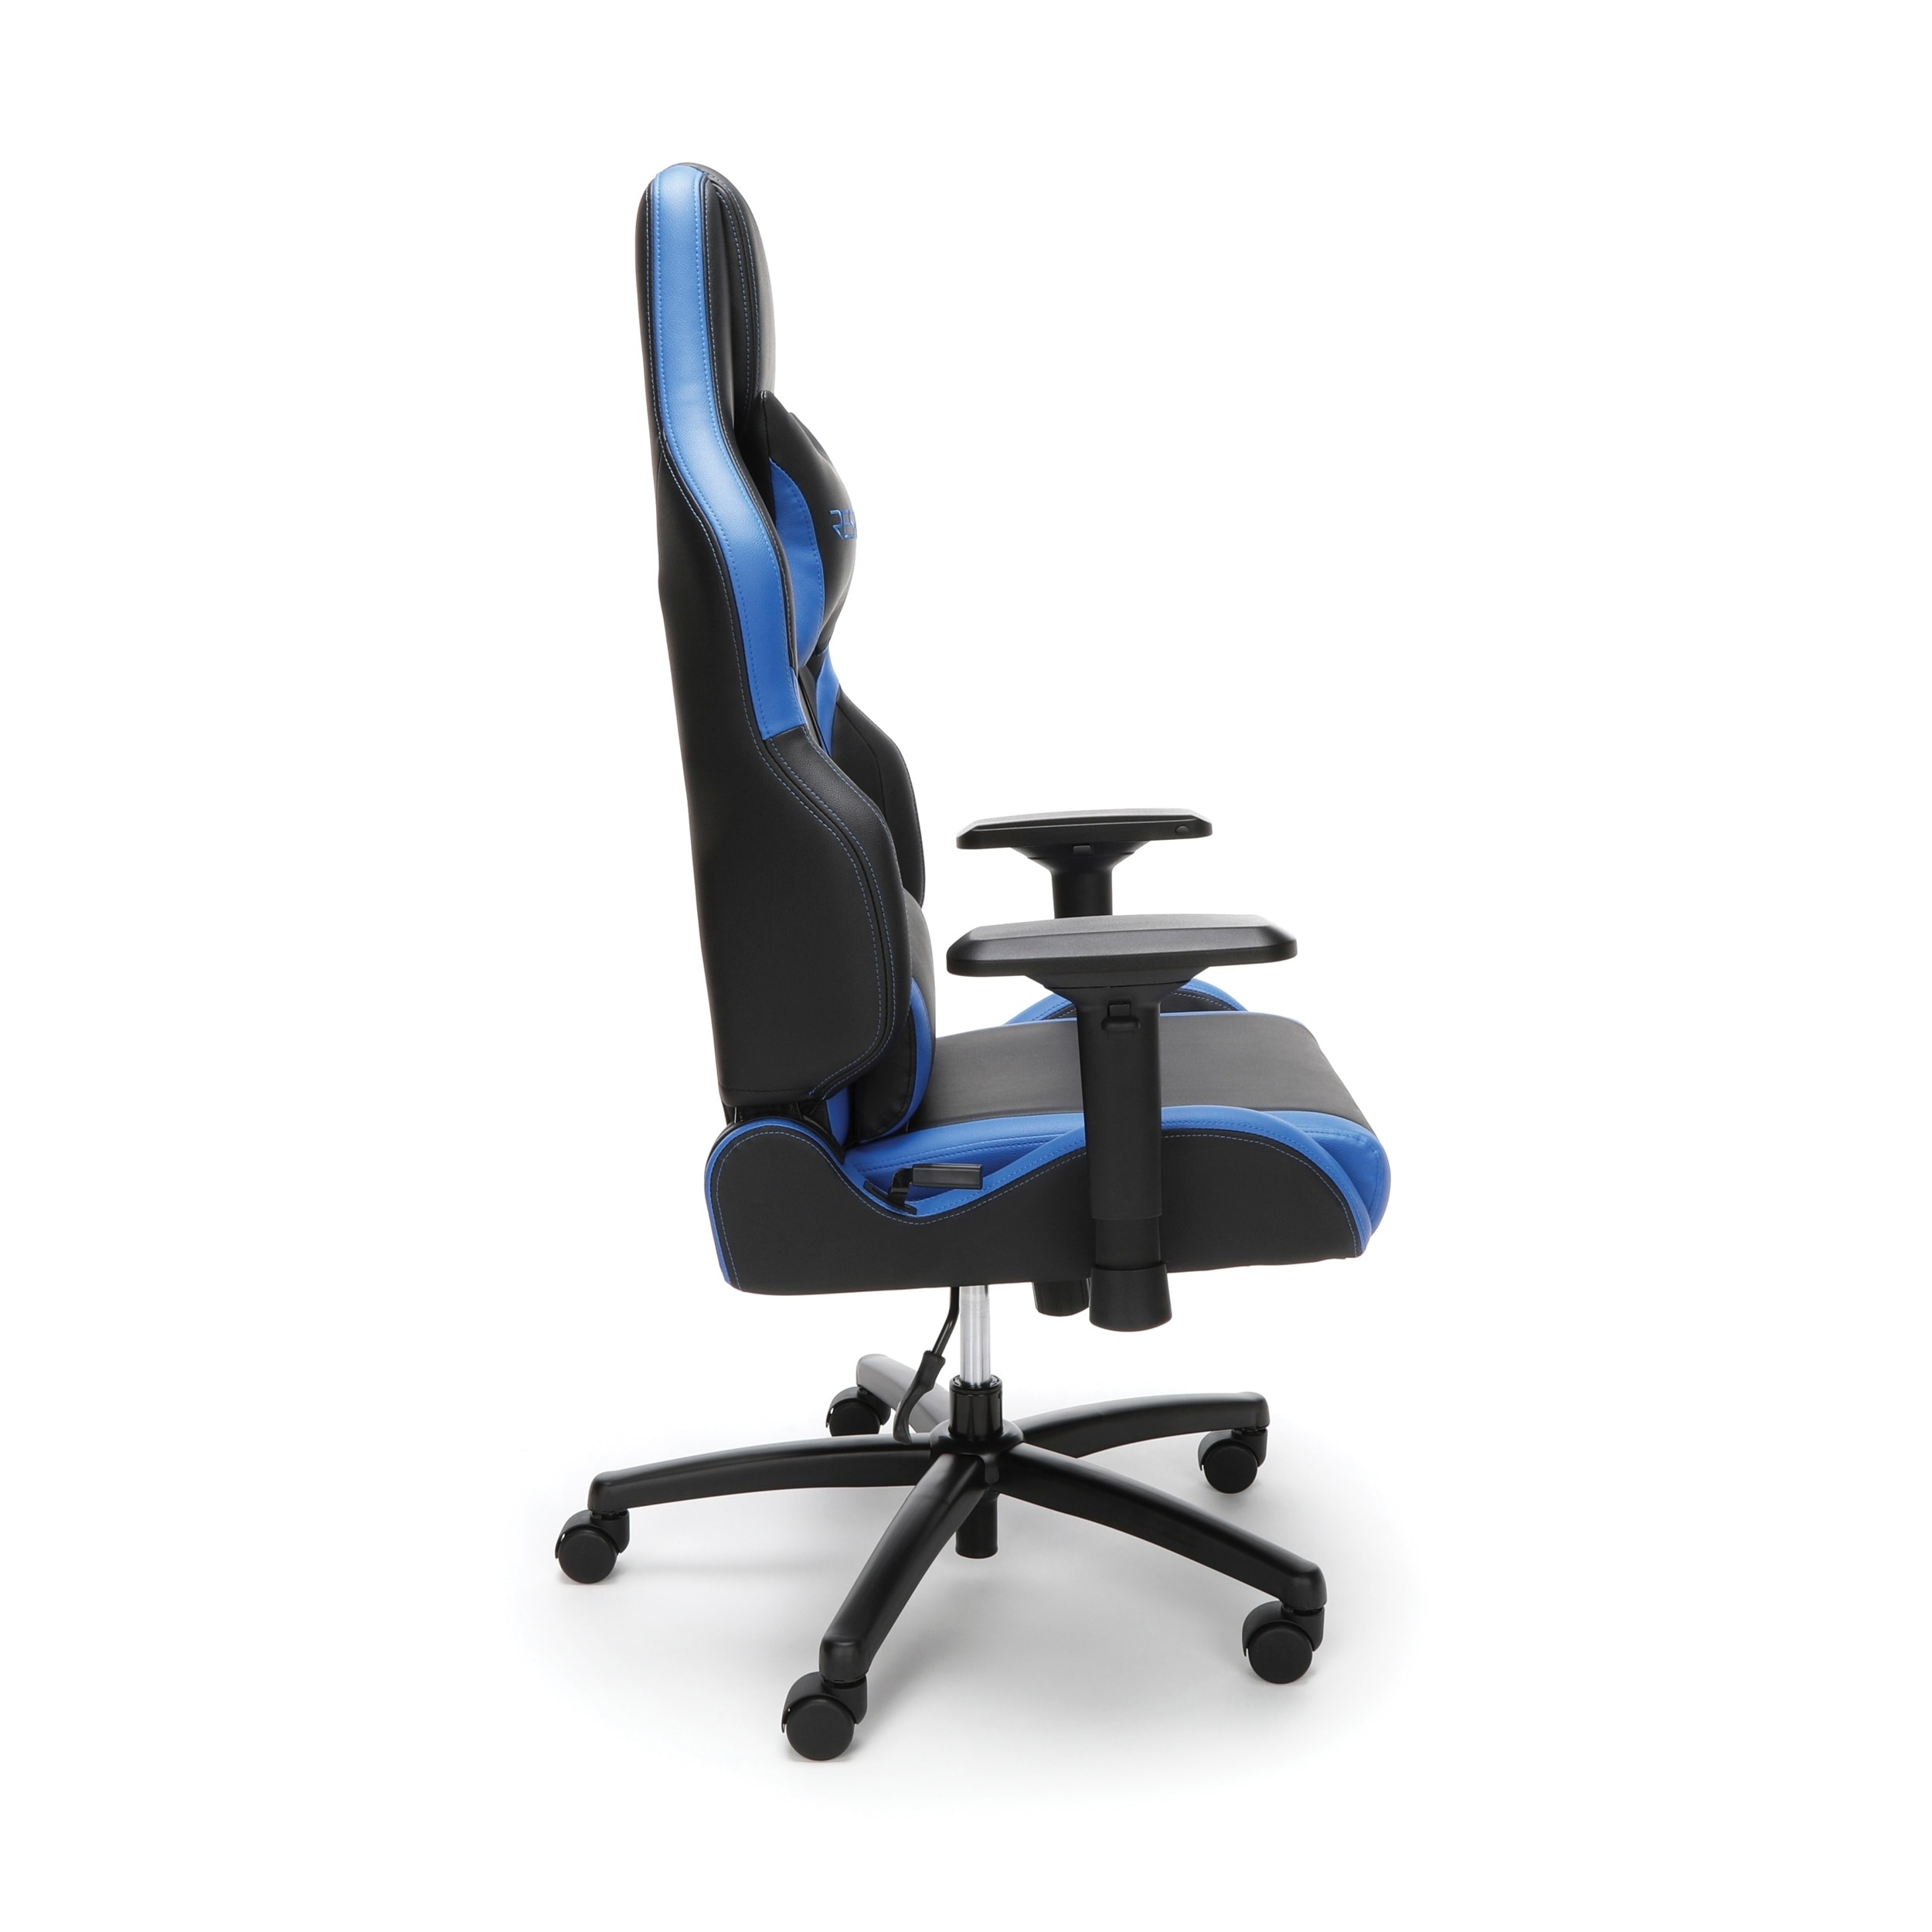 Outstanding Respawn 400 Racing Style Gaming Chair Big And Tall Leather Lamtechconsult Wood Chair Design Ideas Lamtechconsultcom